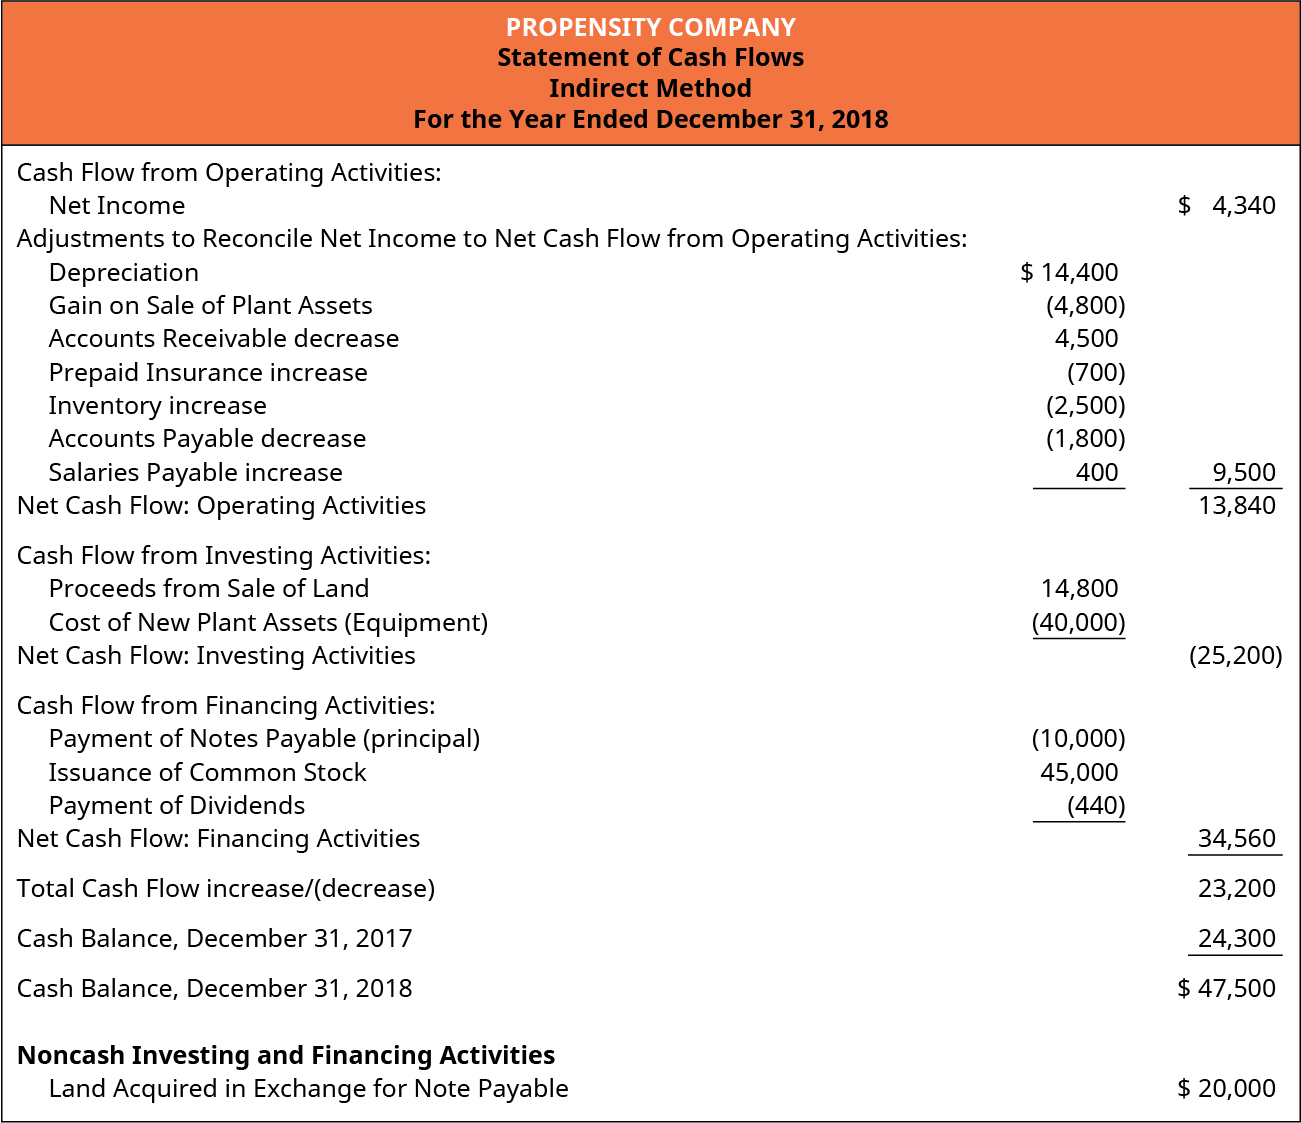 Propensity Company. Statement of Cash Flows. Indirect Method. Year Ended December 31, 2018. Cash Flow from Operating Activities: Net Income $4,340. Adjustments to Reconcile Net Income to Net Cash Flow from Operating Activities: Depreciation $14,400. Gain on Sale of Plant Assets (4,800). Accounts Receivable decrease 4,500. Prepaid Insurance increase (700). Inventory increase (2,500). Accounts Payable decrease (1,800). Salaries Payable increase 400. Total Adjustments 9,500. Net Cash Flow: Operating Activities $13,840. Cash Flow from Investing Activities: Proceeds from Sale of Land $14,800. Cost of New Plant Assets (Equipment) (40,000). Net Cash Flow: Investing Activities ($25,200). Cash Flow from Financing Activities: Payment of Notes Payable (principal) (10,000). Issuance of Common Stock 45,000. Payment of Dividends (440). Net Cash Flow: Financing Activities $34,560. Total Cash Flow increase 23,200. Cash Balance December 31, 2017 24,300. Cash Balance December 31, 2018 47,500. Non-cash Investing and Financing Activities. Land Acquired in Exchange for Note Payable $20,000.